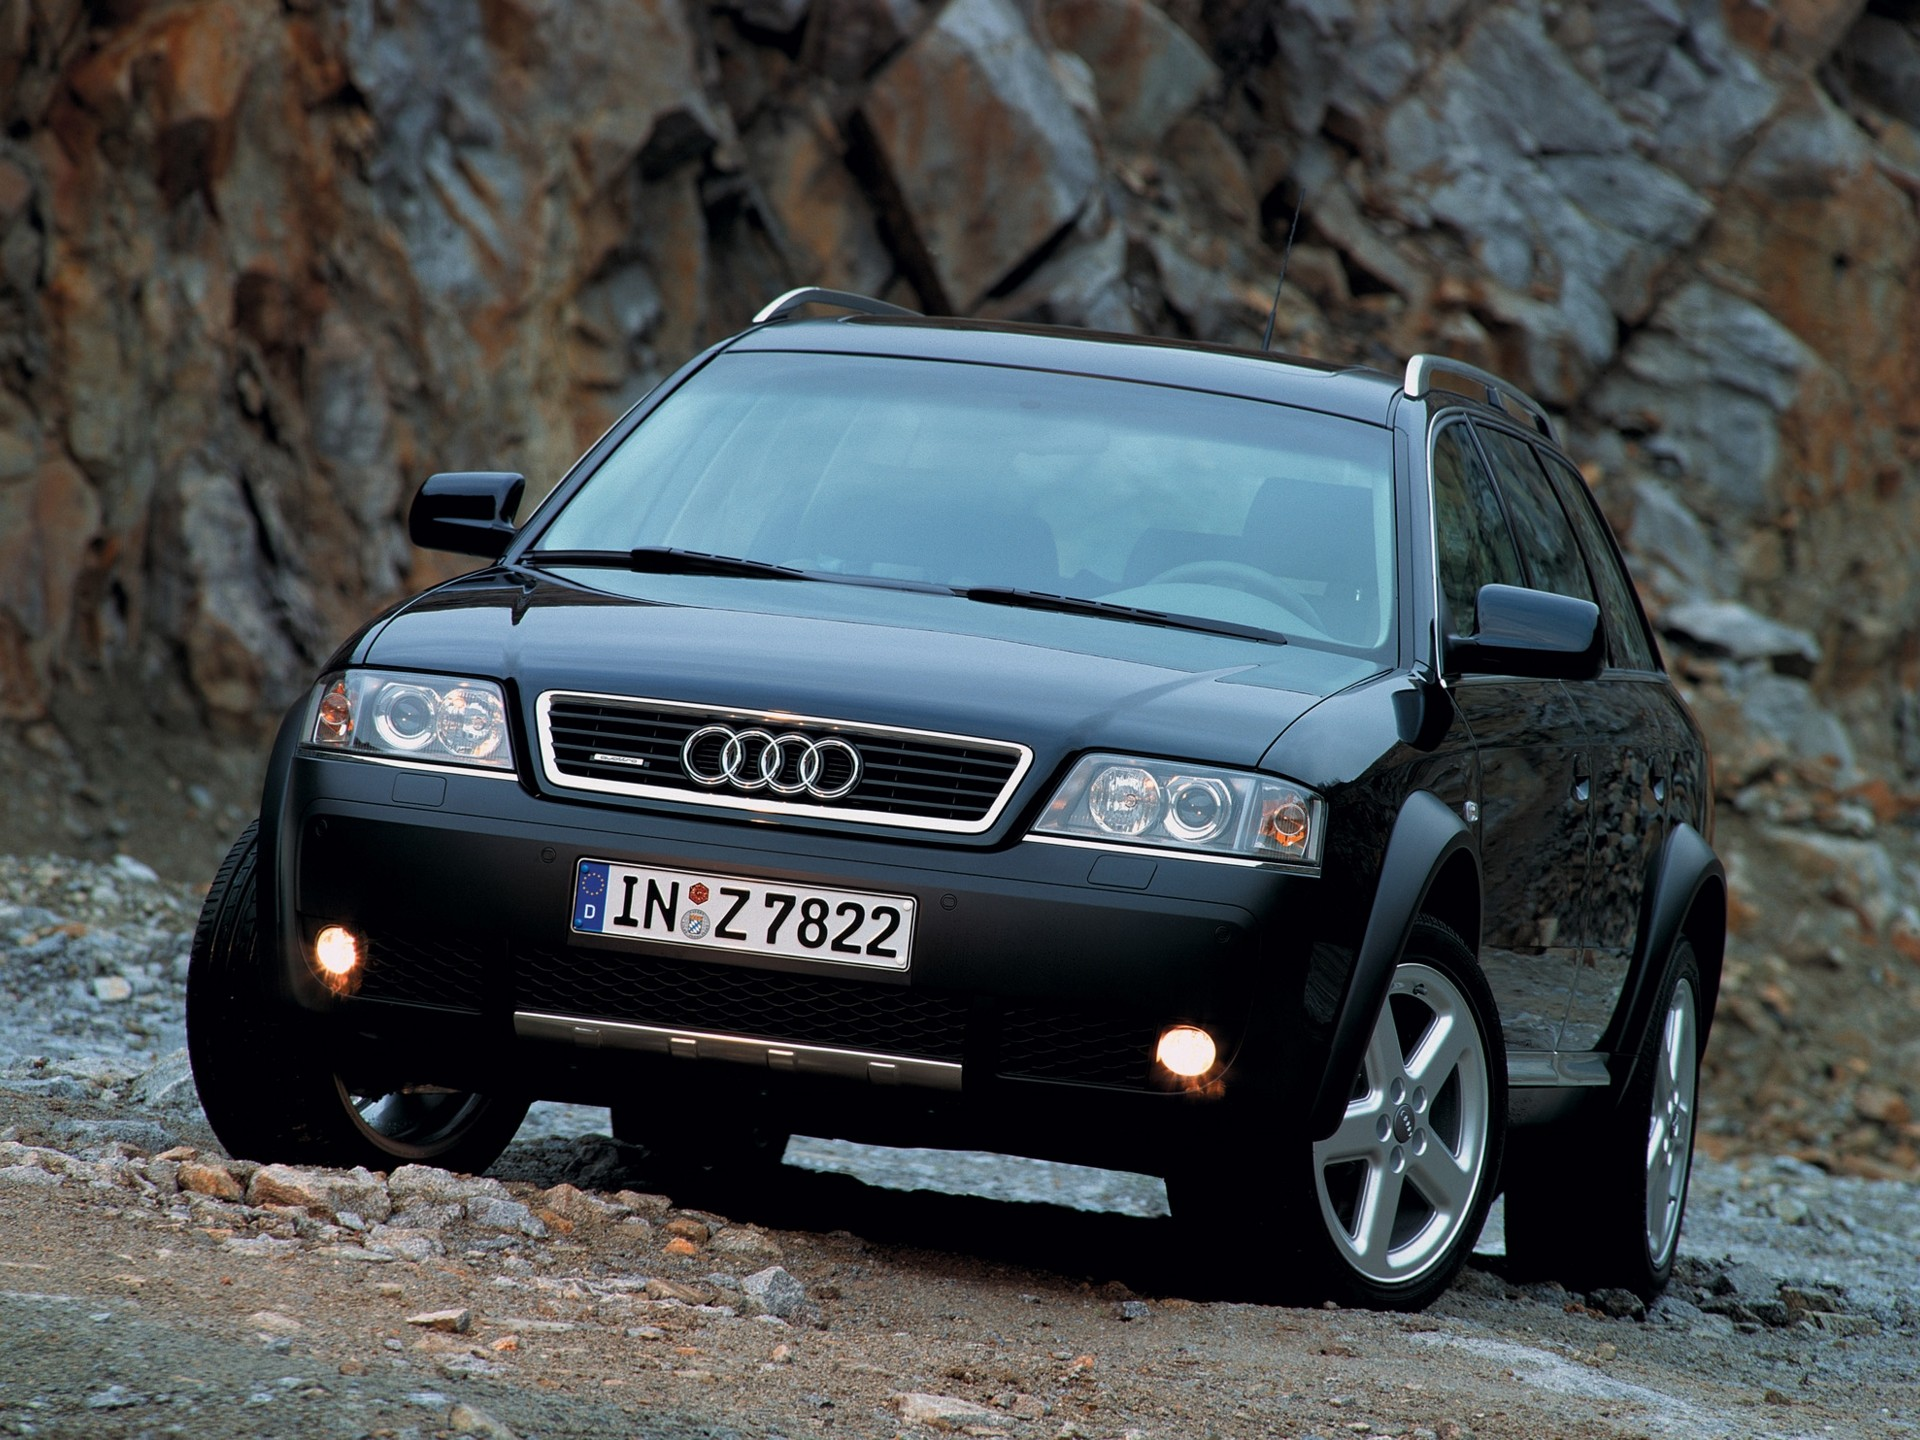 spec quattro specifications aspx related uk info audi allroad infomation